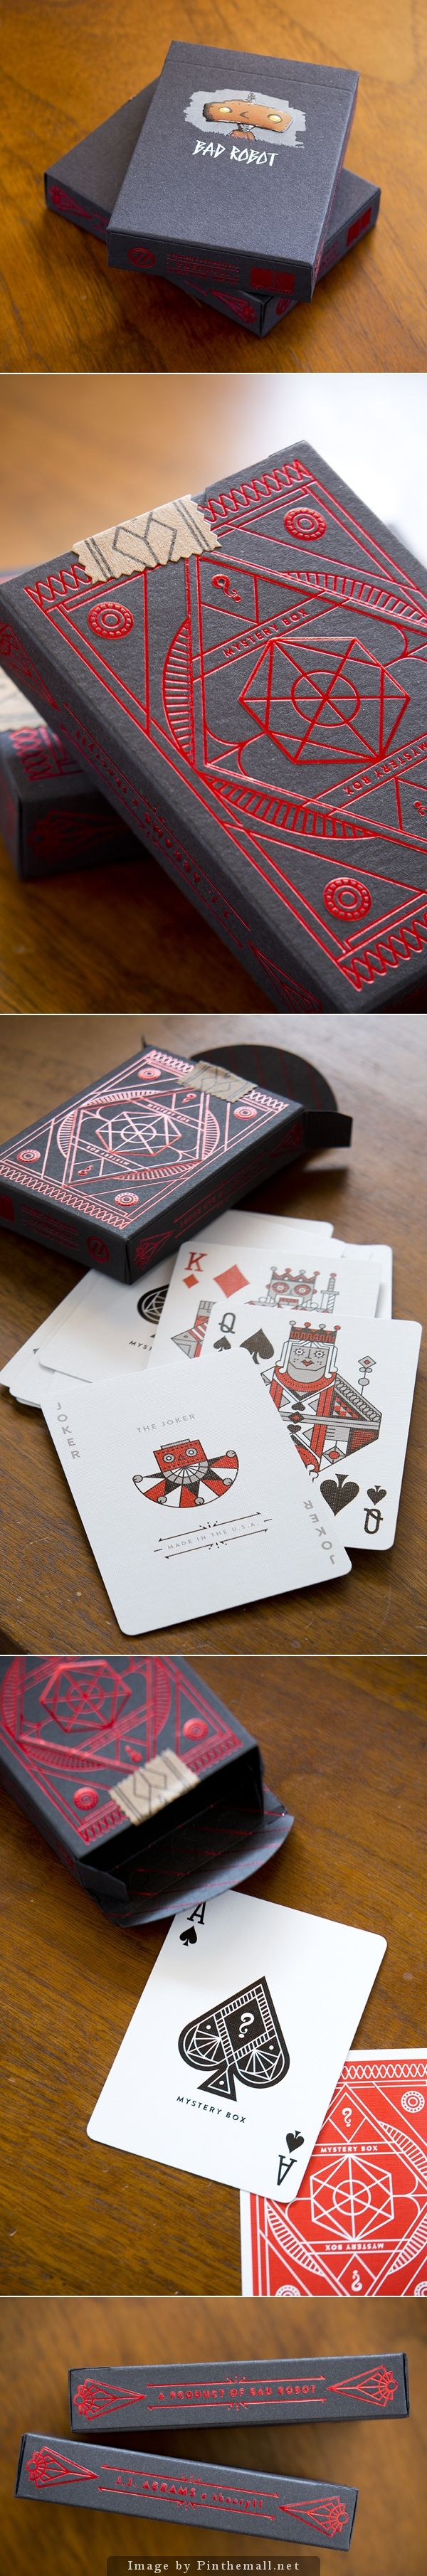 Playing Cards by Luke Bott - playingcards, playingcardsart, playingcardsforsale, playingcardswiththefamily, playingcardswithfamily, playingcardsgame, playingcardscollection, playingcardstorage, playingcardset, playingcardsproject, cardscollector, playingcard, design, illustration, cards, cardist